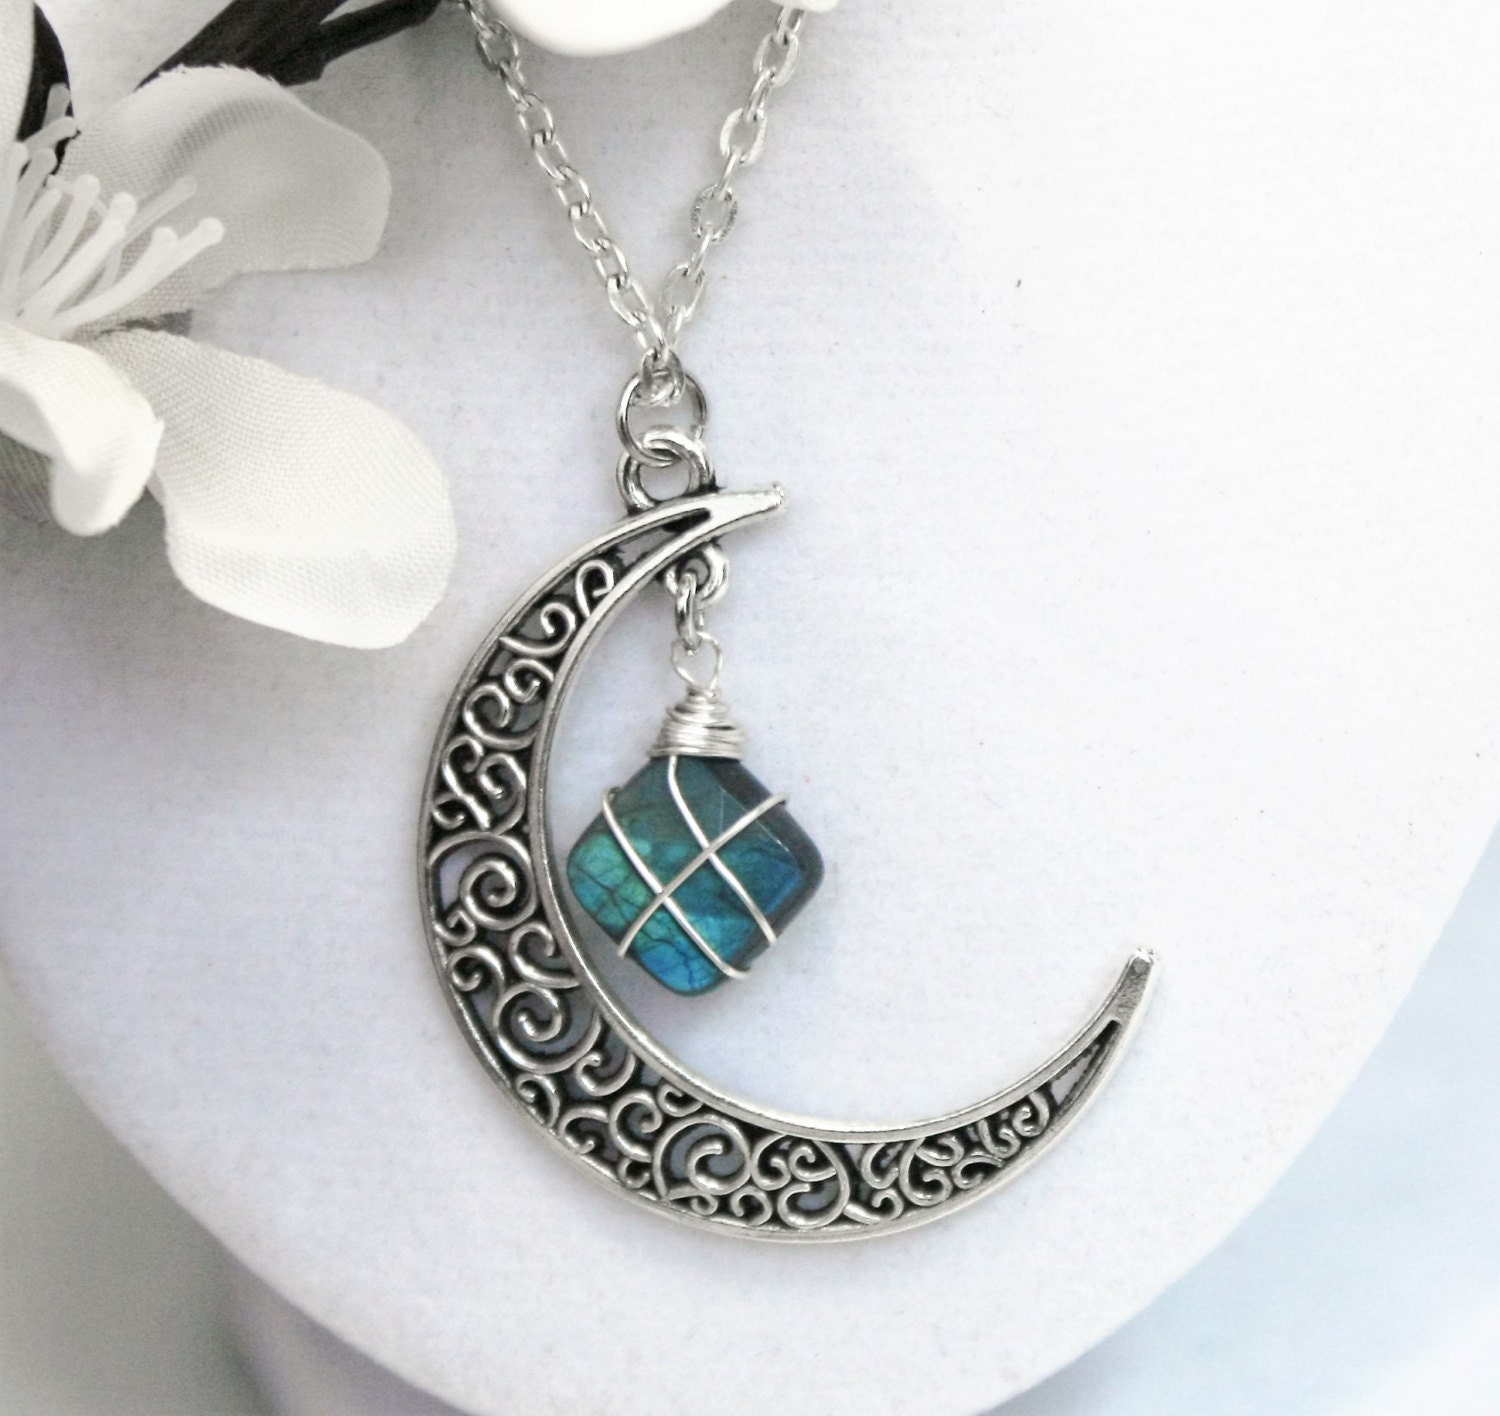 jewelry lovely products sold labradorite concepts has product arabella out this all necklace page